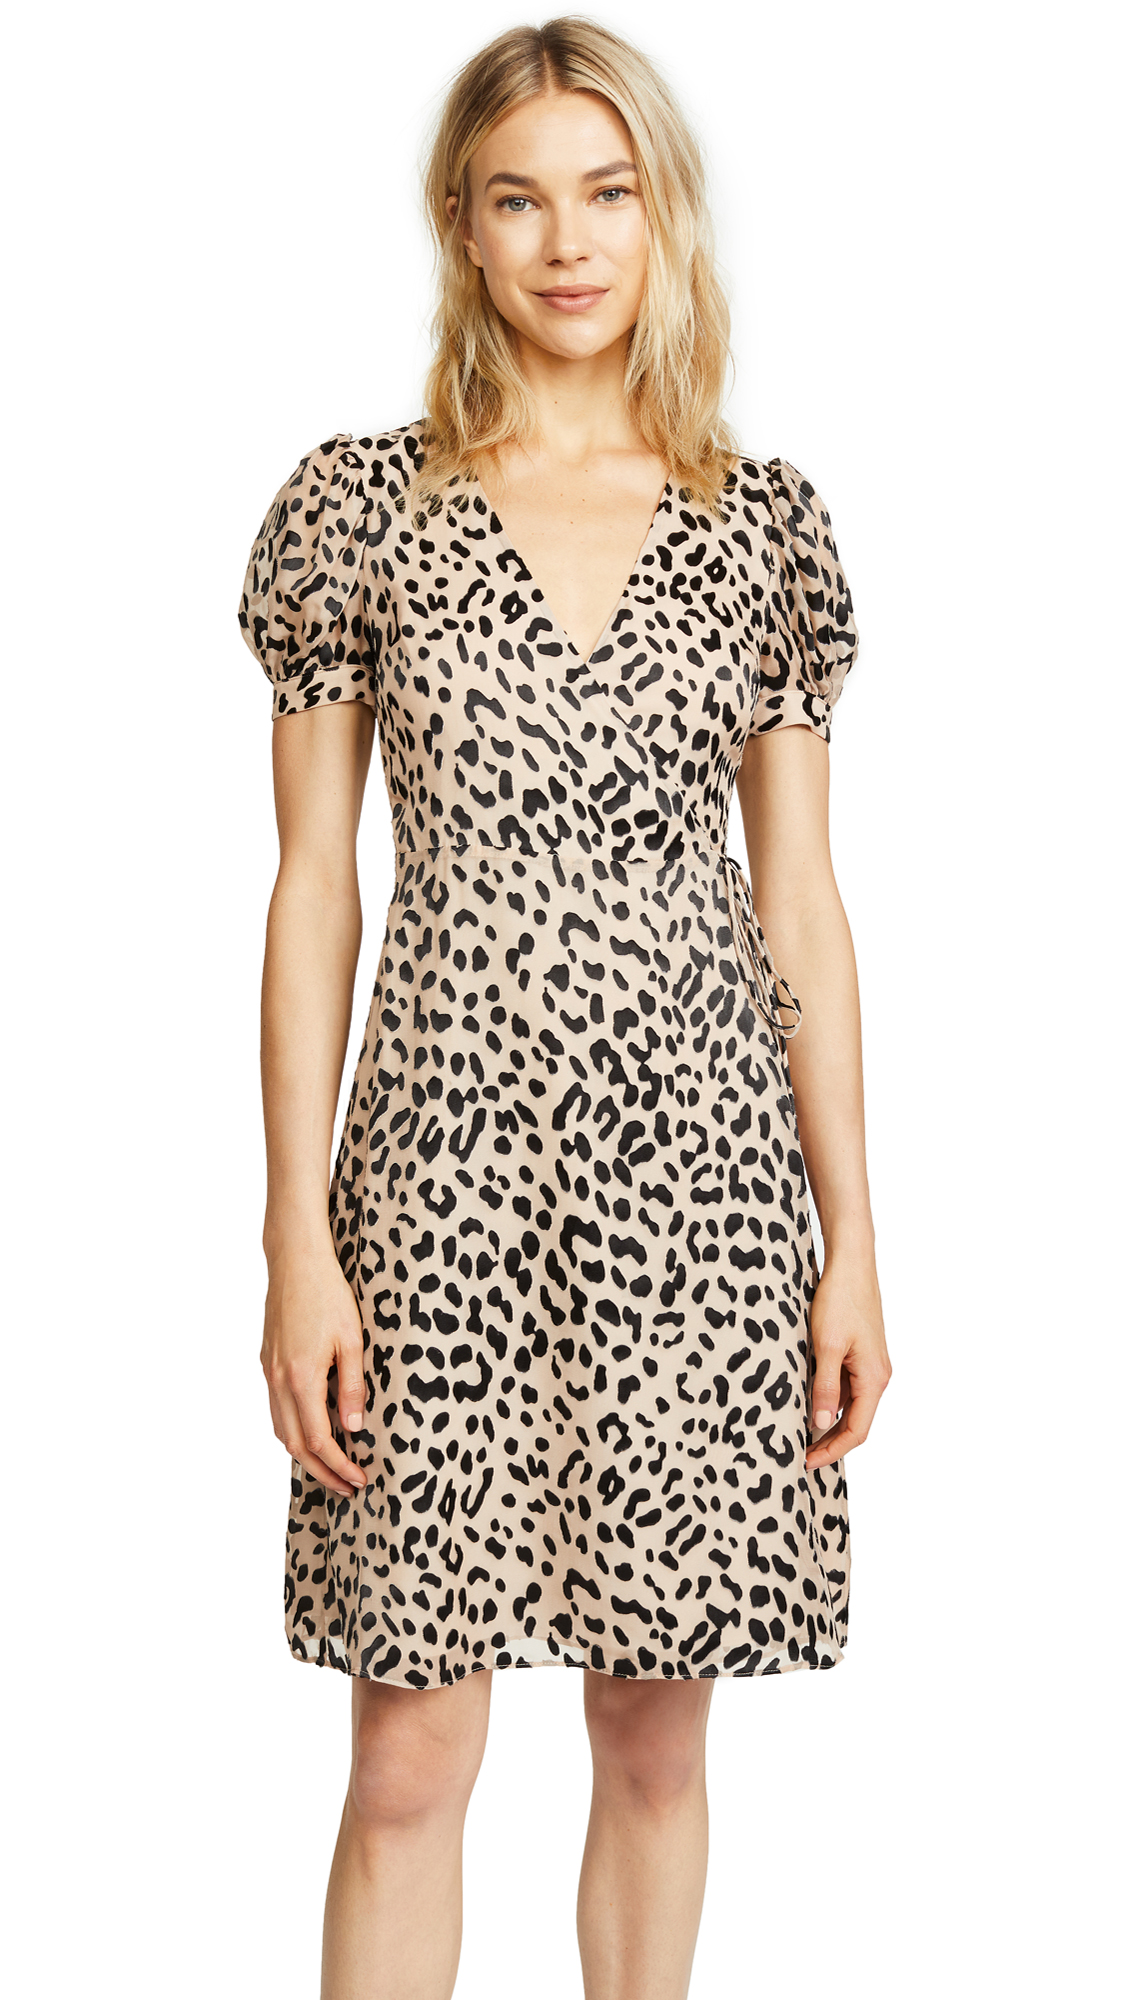 alice + olivia Rosette Dress In Leopard/Sand